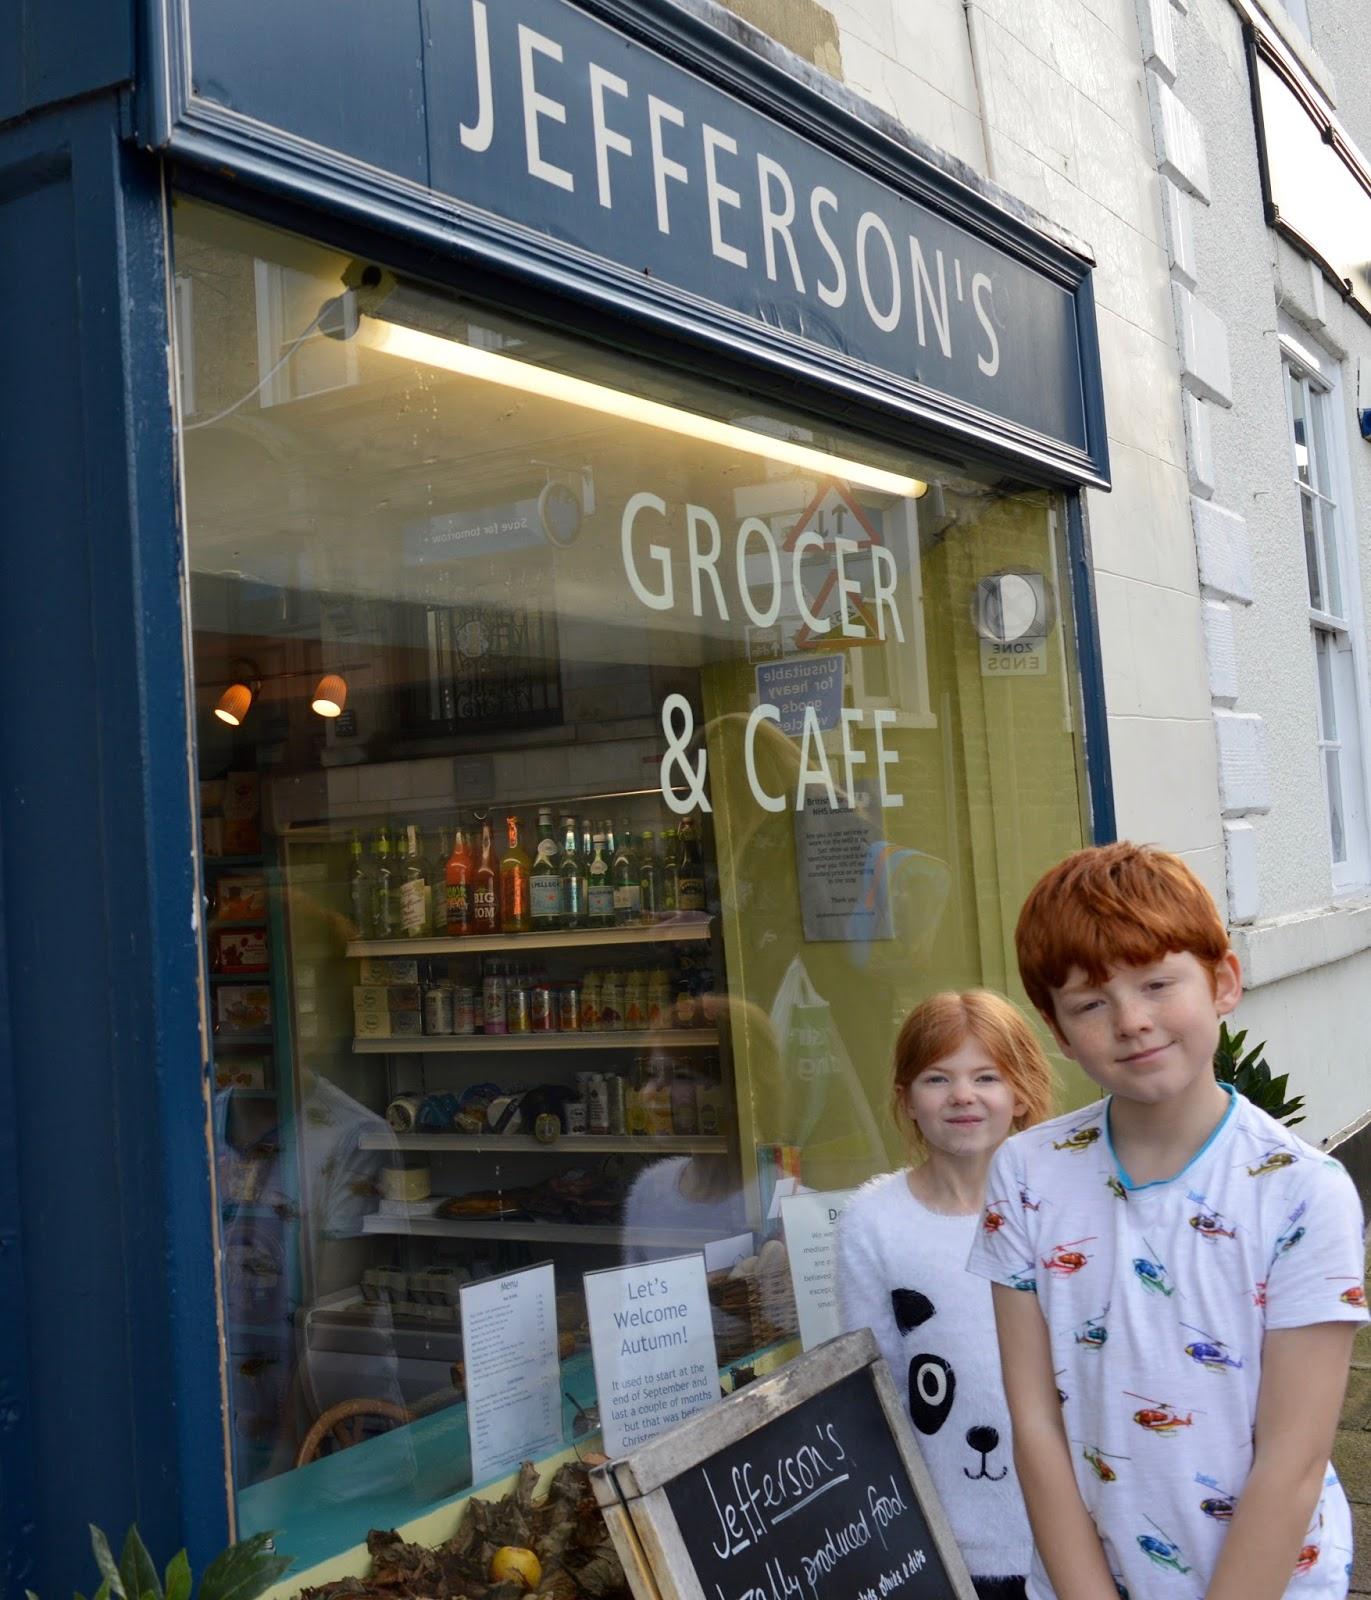 A weekend break in Richmond, North Yorkshire | What to do with the kids - Jefferson's Grocer's and cafe